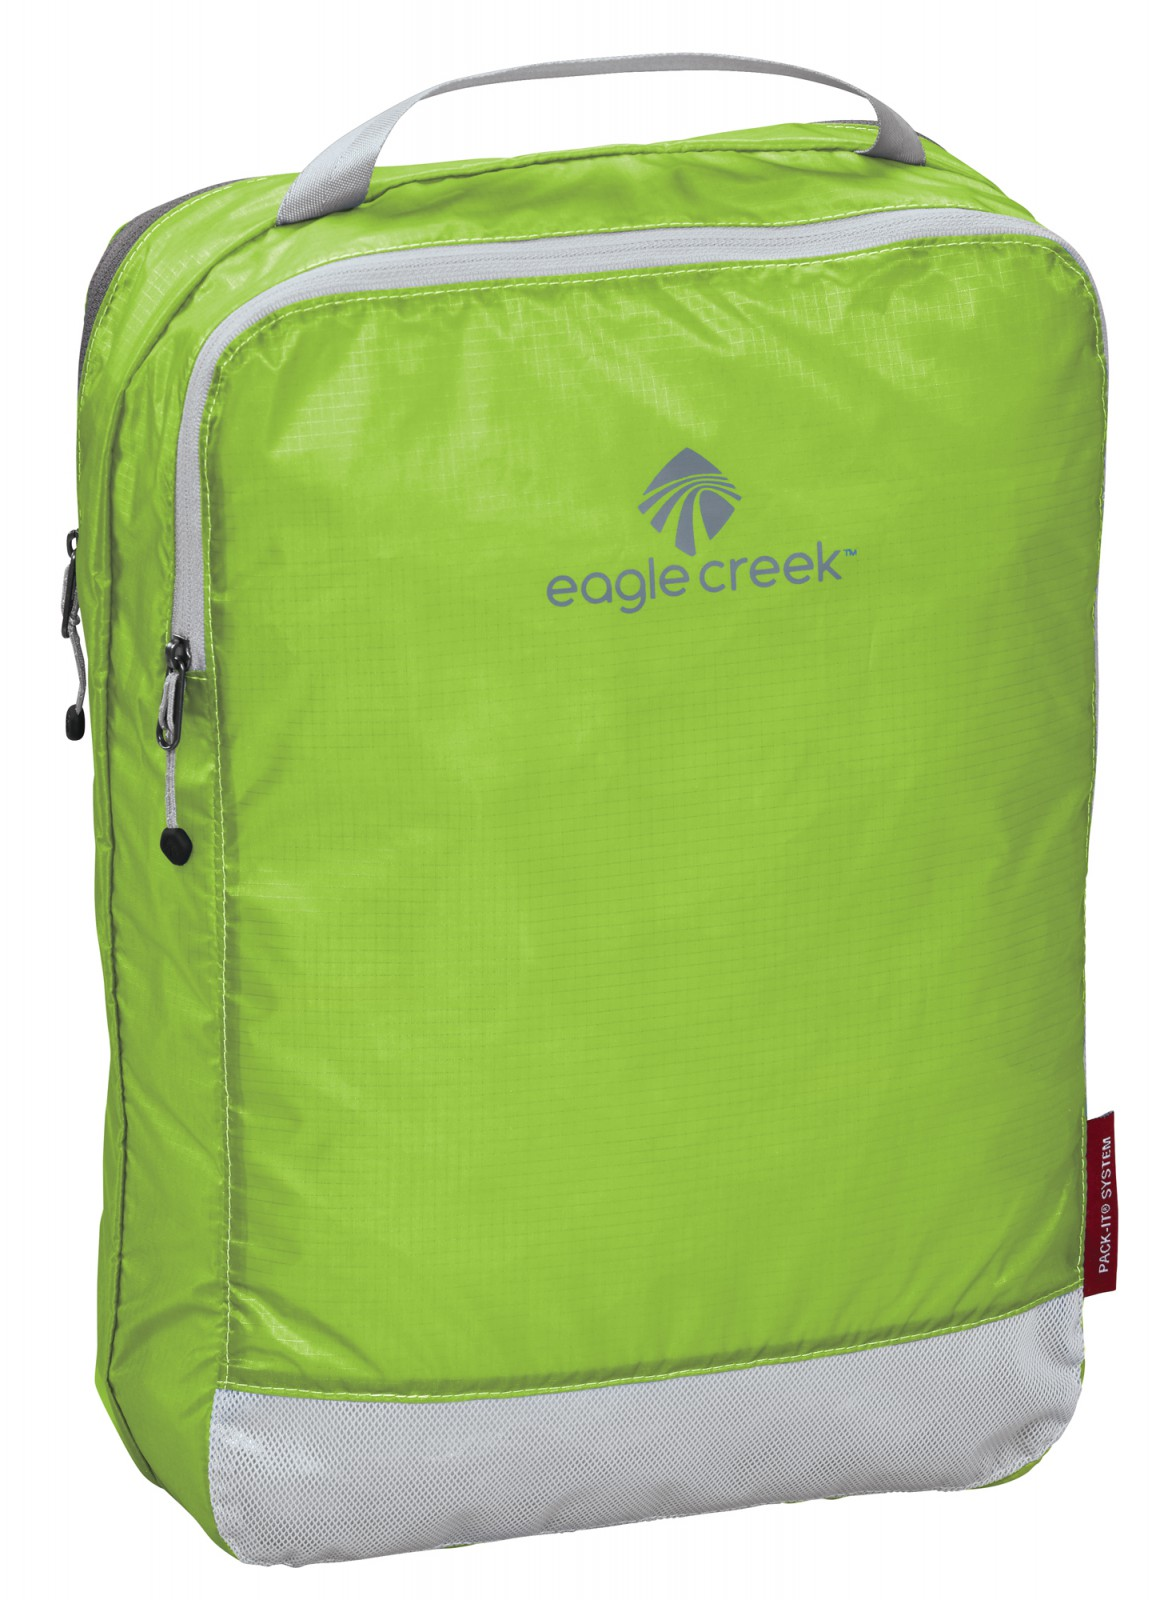 eagle creek Pack-It Specter Clean Dirty Cube M Strobe Green